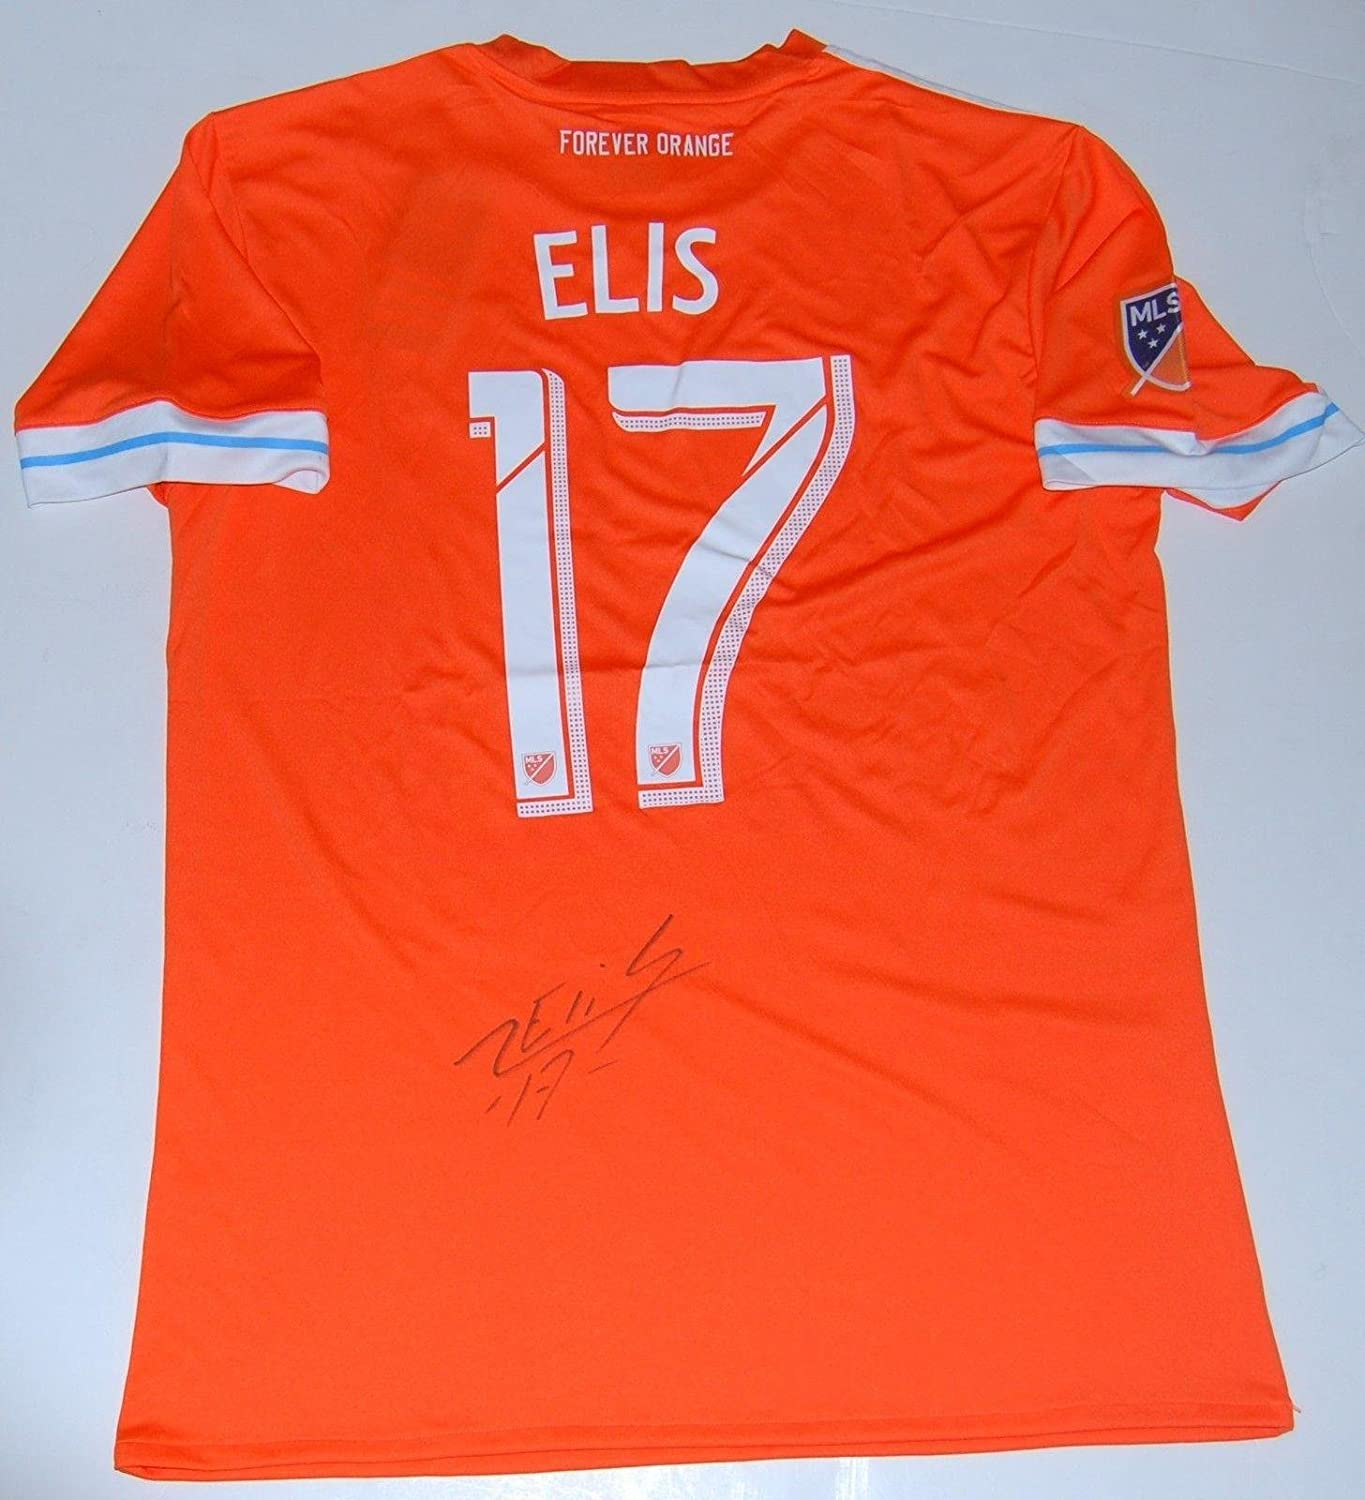 Alberth Elis Signed Houston Dynamo Orange Mls Soccer Jersey W Coa Autographed Soccer Jerseys At Amazon S Sports Collectibles Store